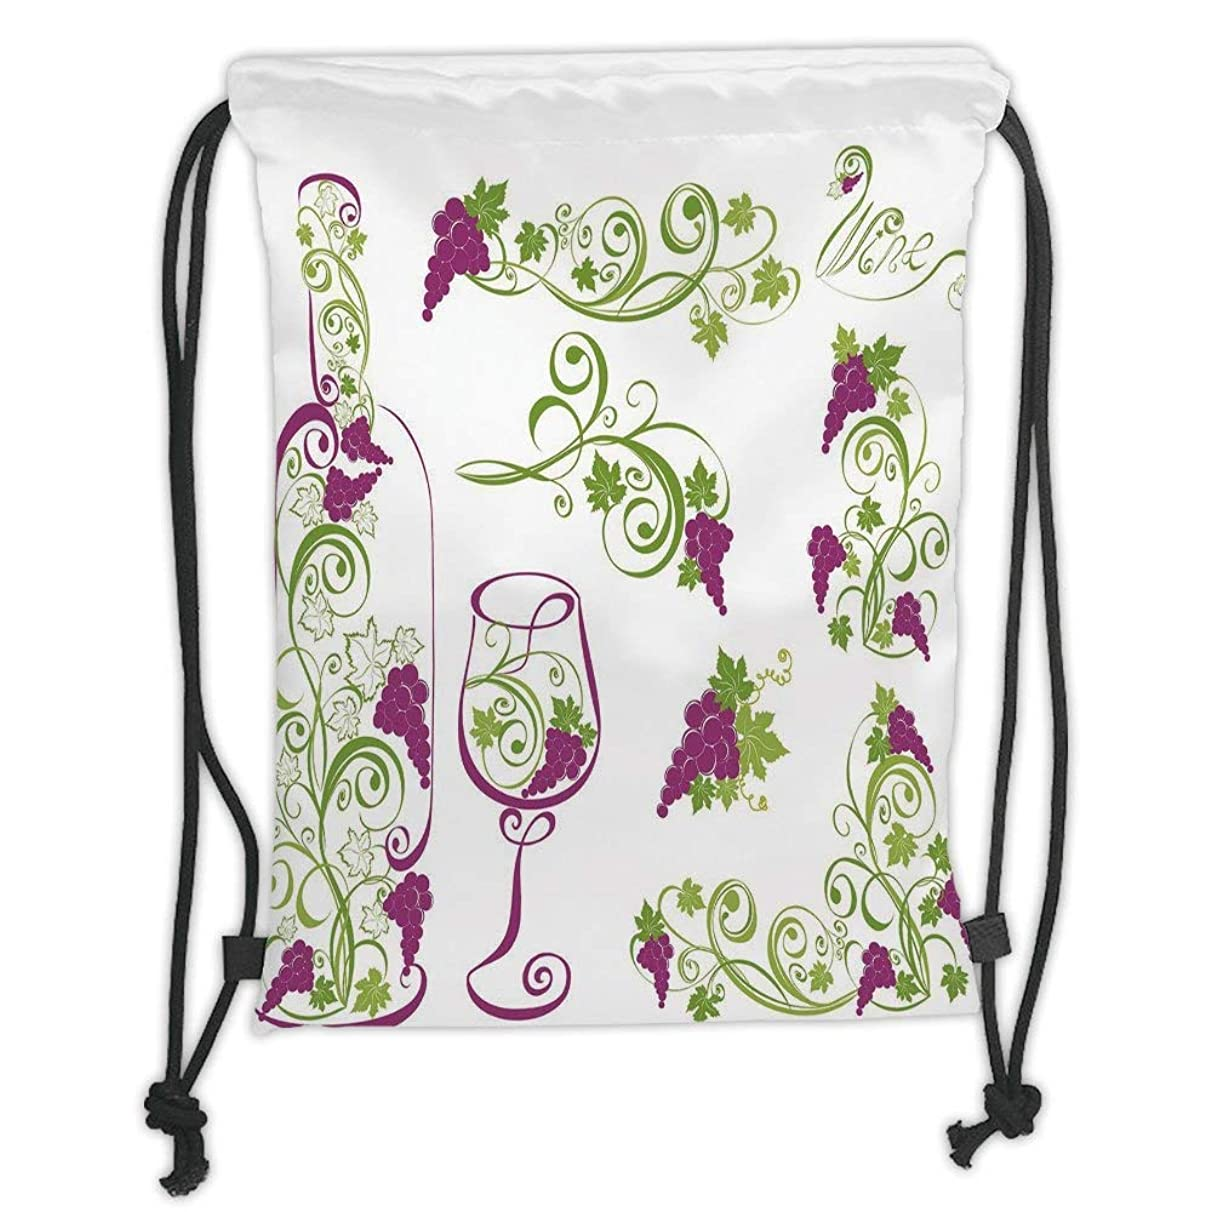 New Fashion Gym Drawstring Backpacks Bags,Wine,Wine Bottle and Glass Grapevines Lettering with Swirled Branches Lines Decorative,Purple Lime Green White Soft Satin,Adjustable Stri